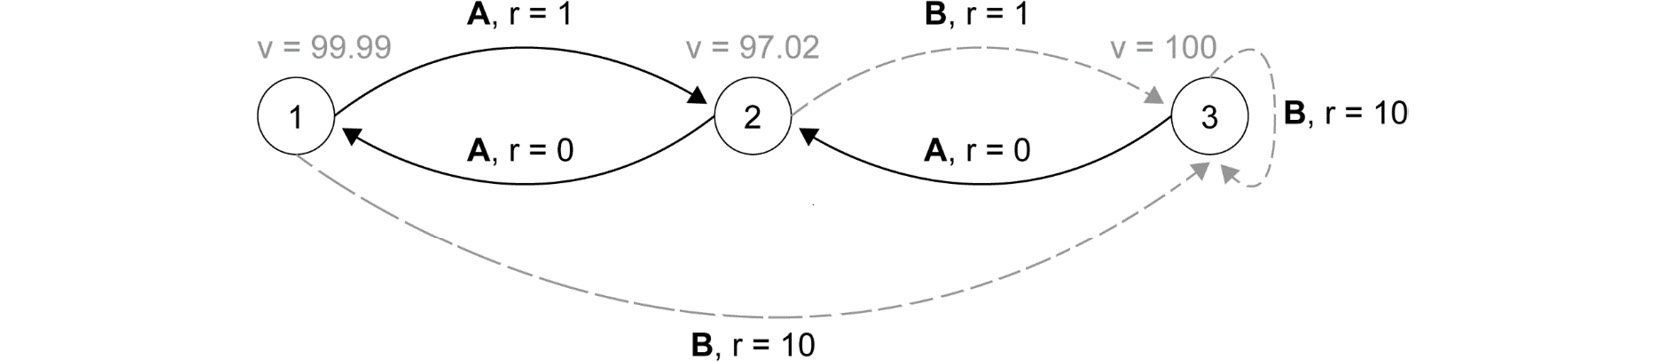 Figure 2.59: Representation of the optimal policy and the optimal  value function for the MDP